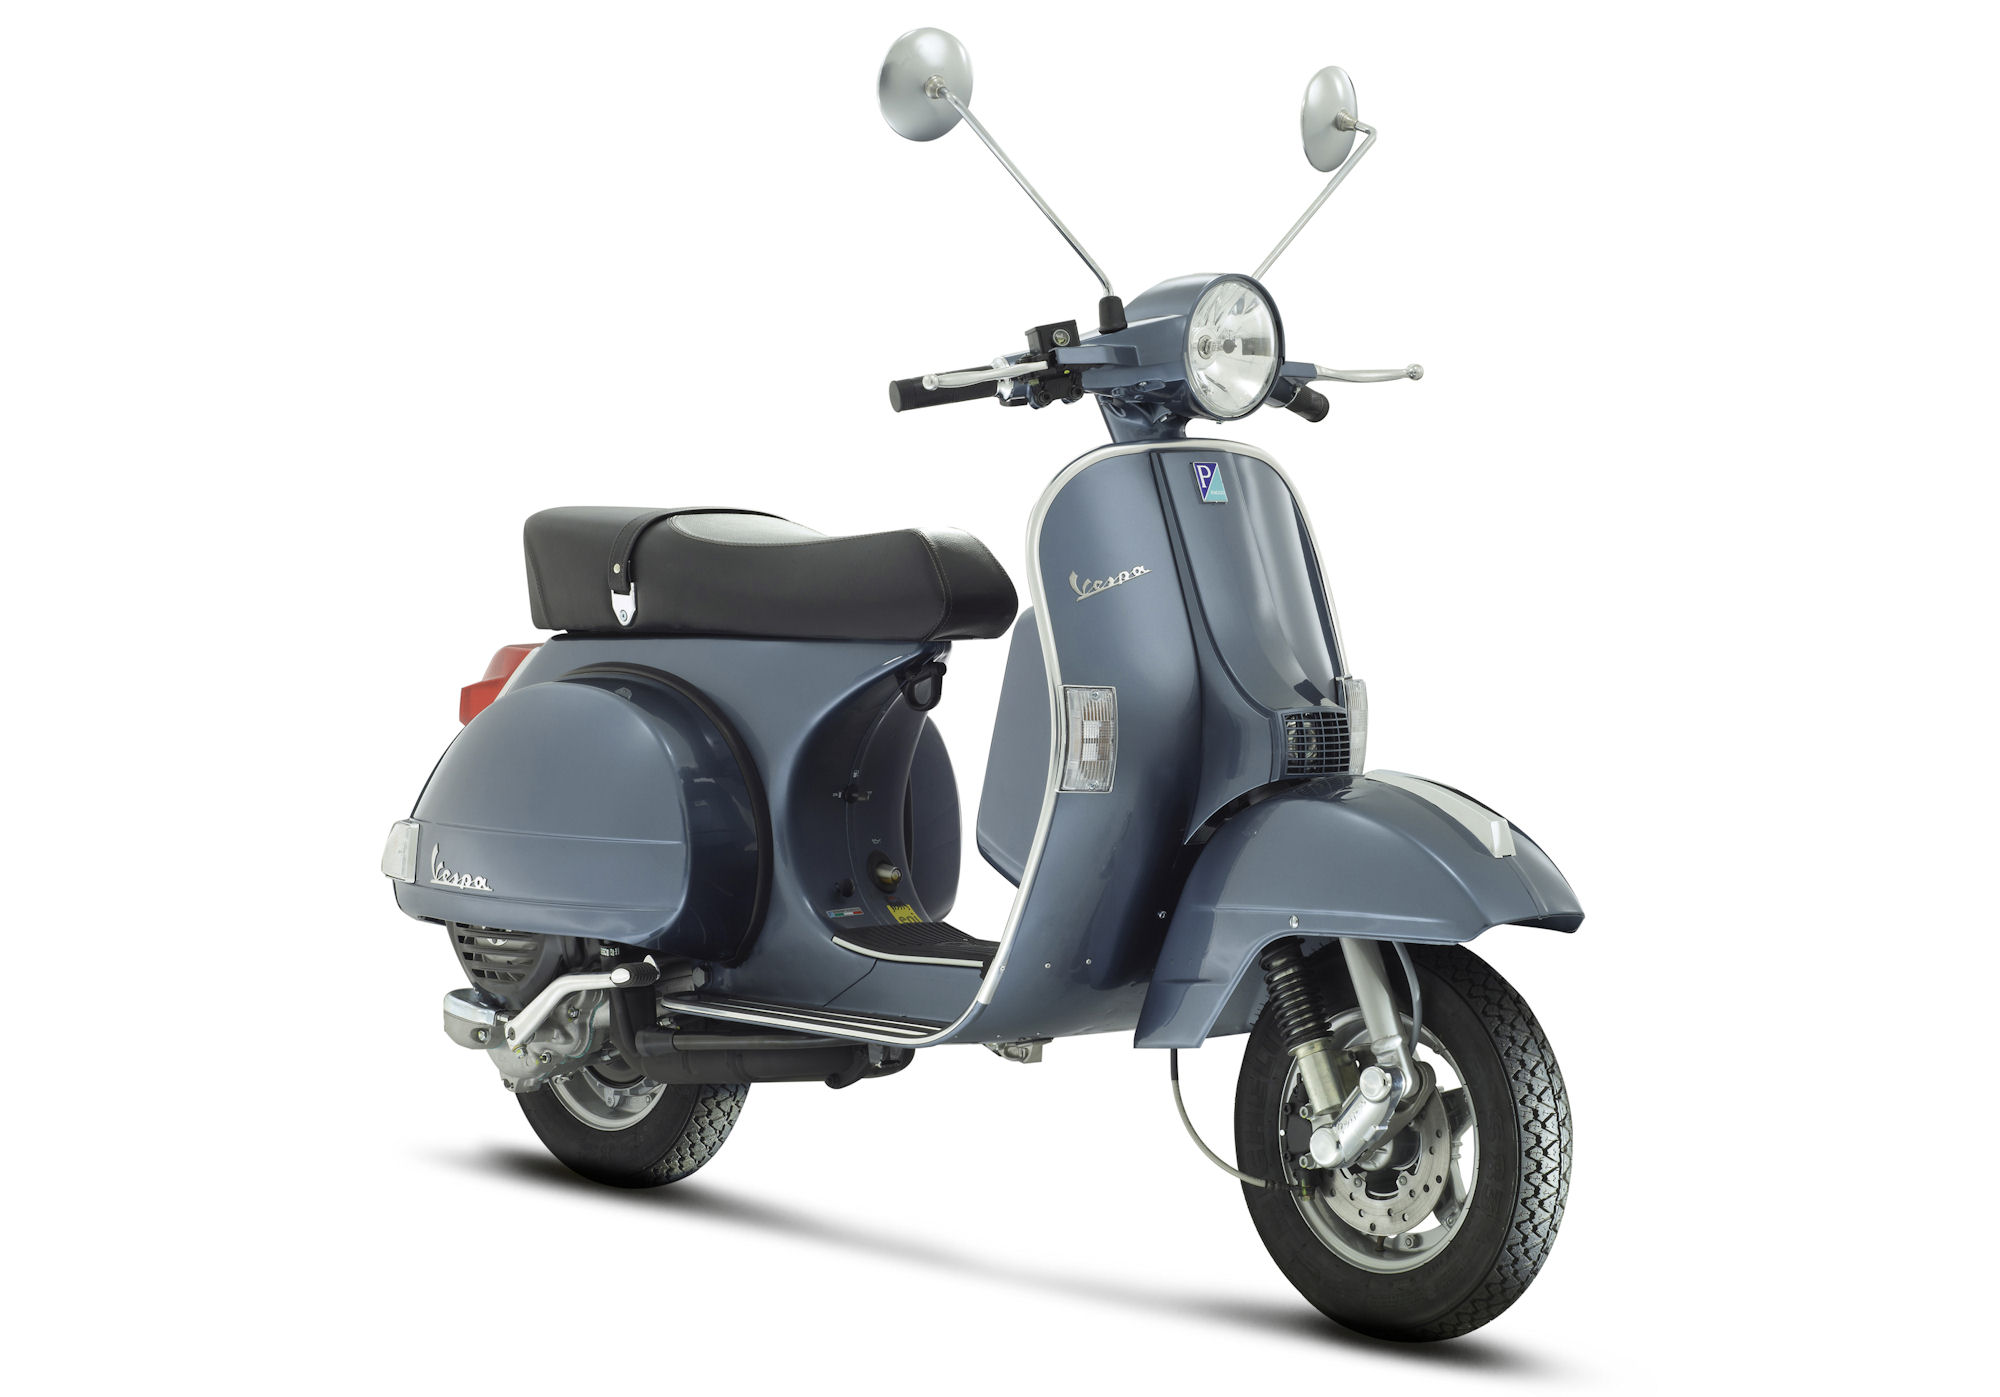 Vespa px125 photo - 5